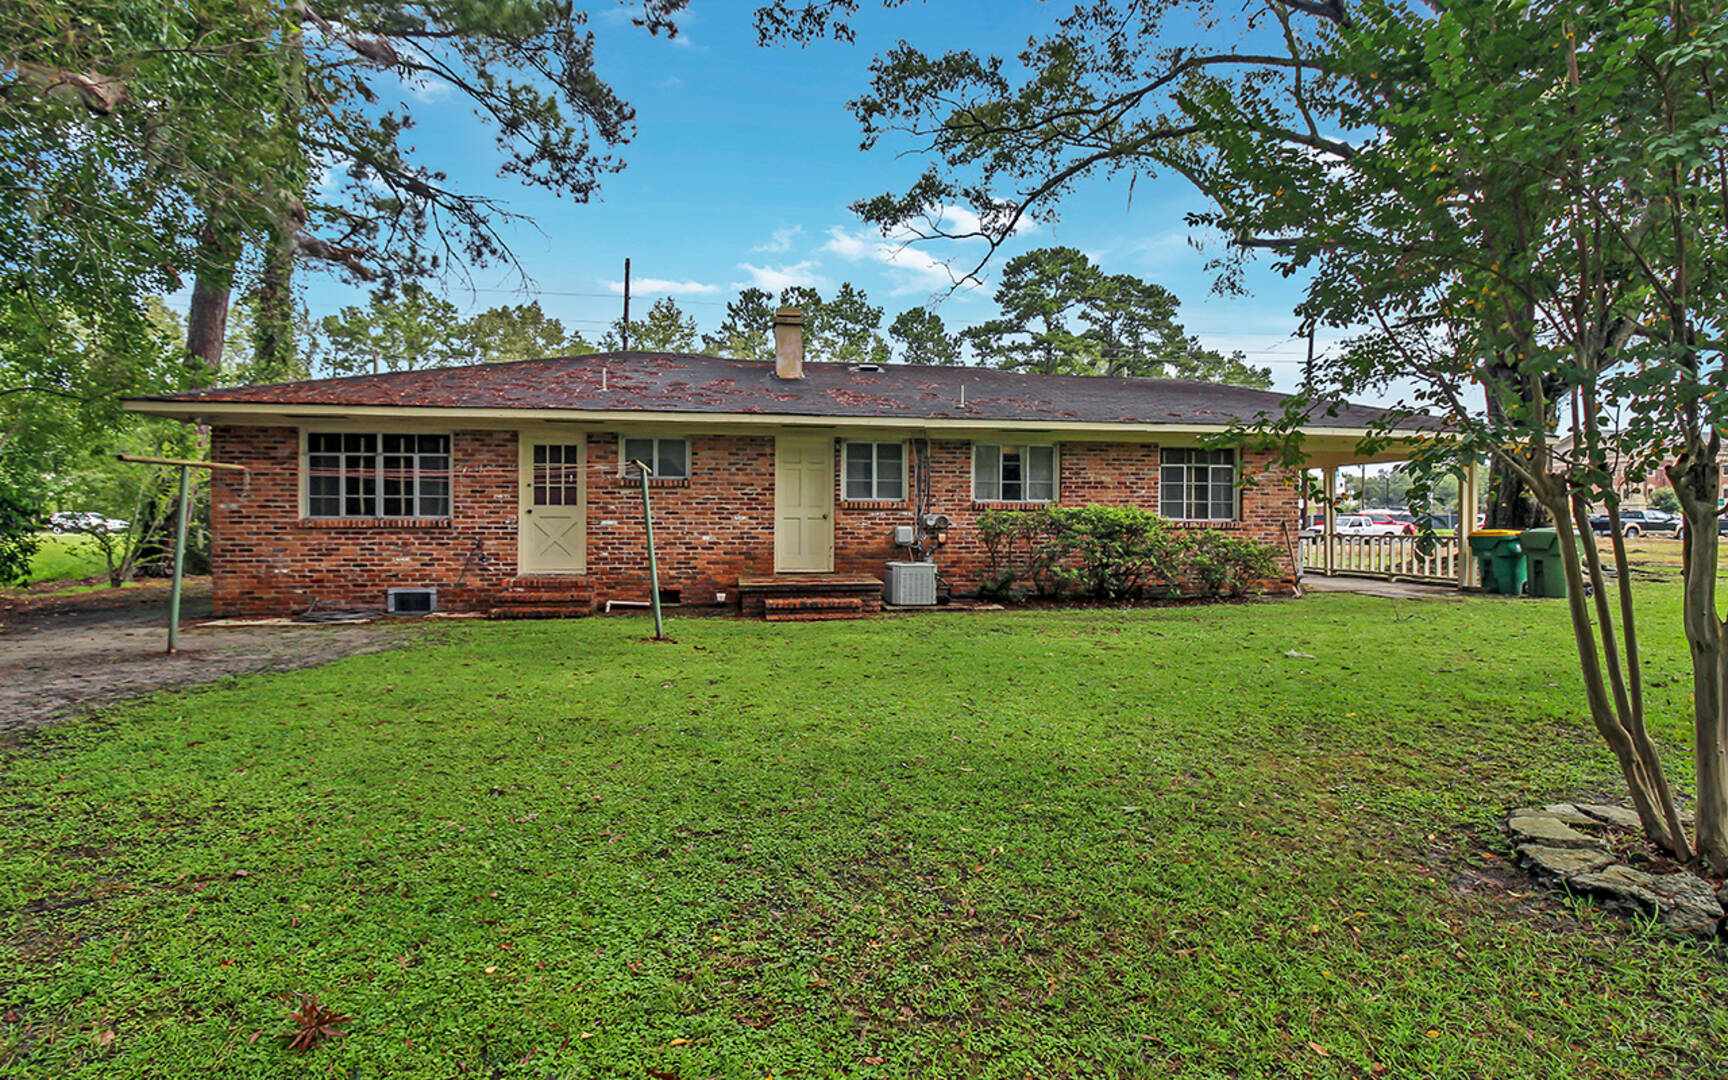 313 W. Collins St Pooler, GA 31322